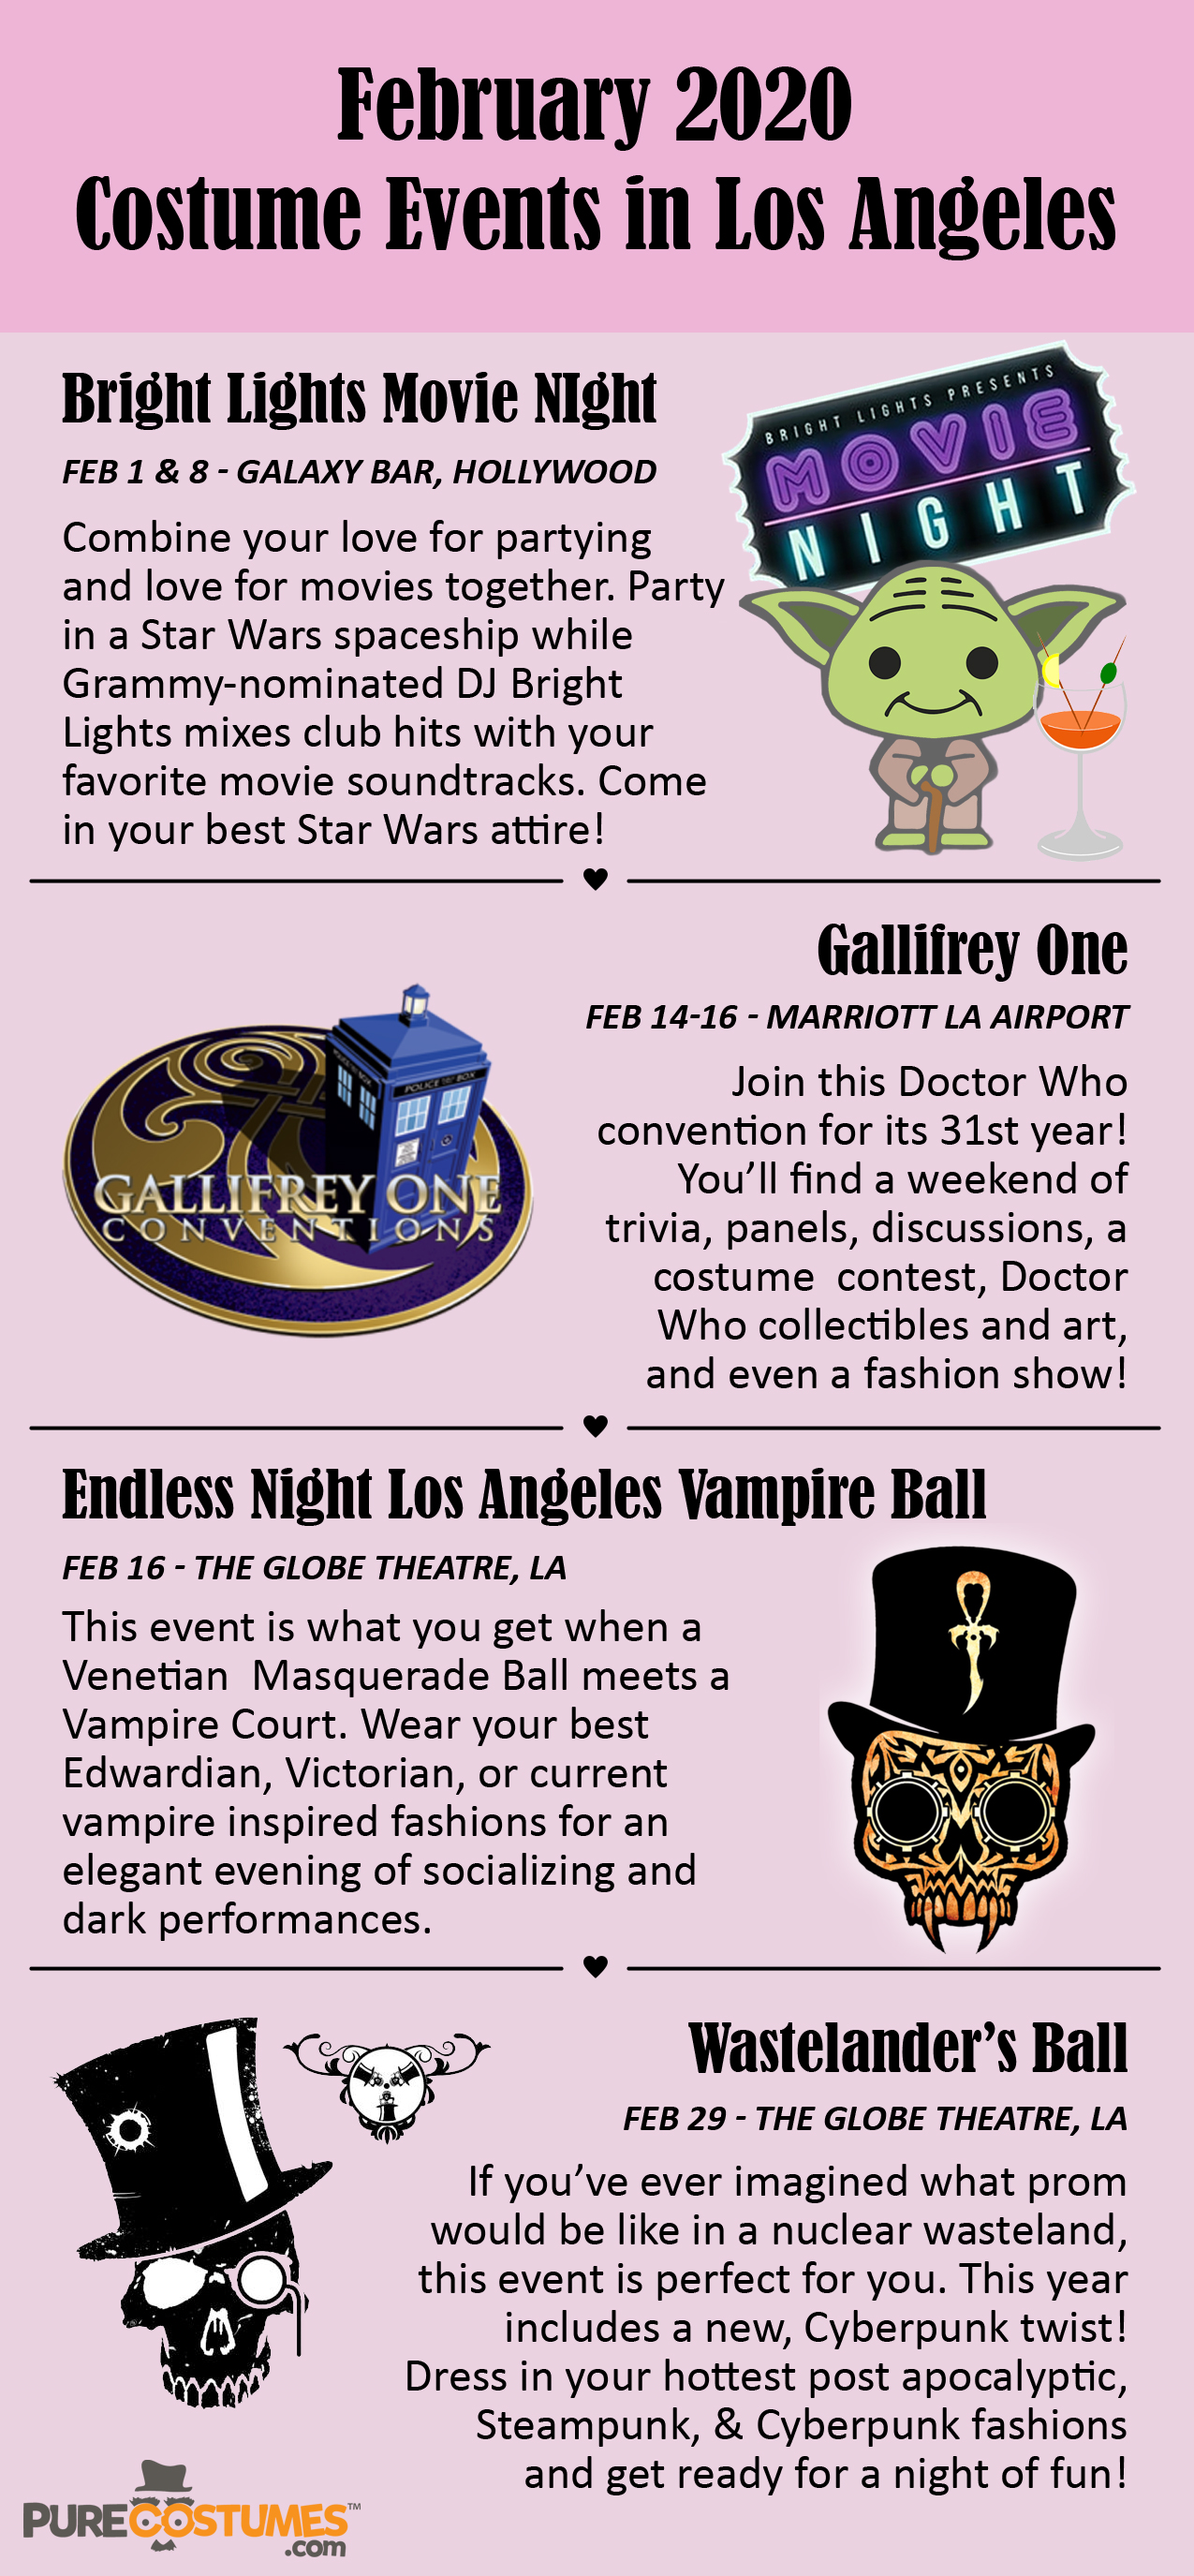 infographic February 2020 Los Angeles Costume Events